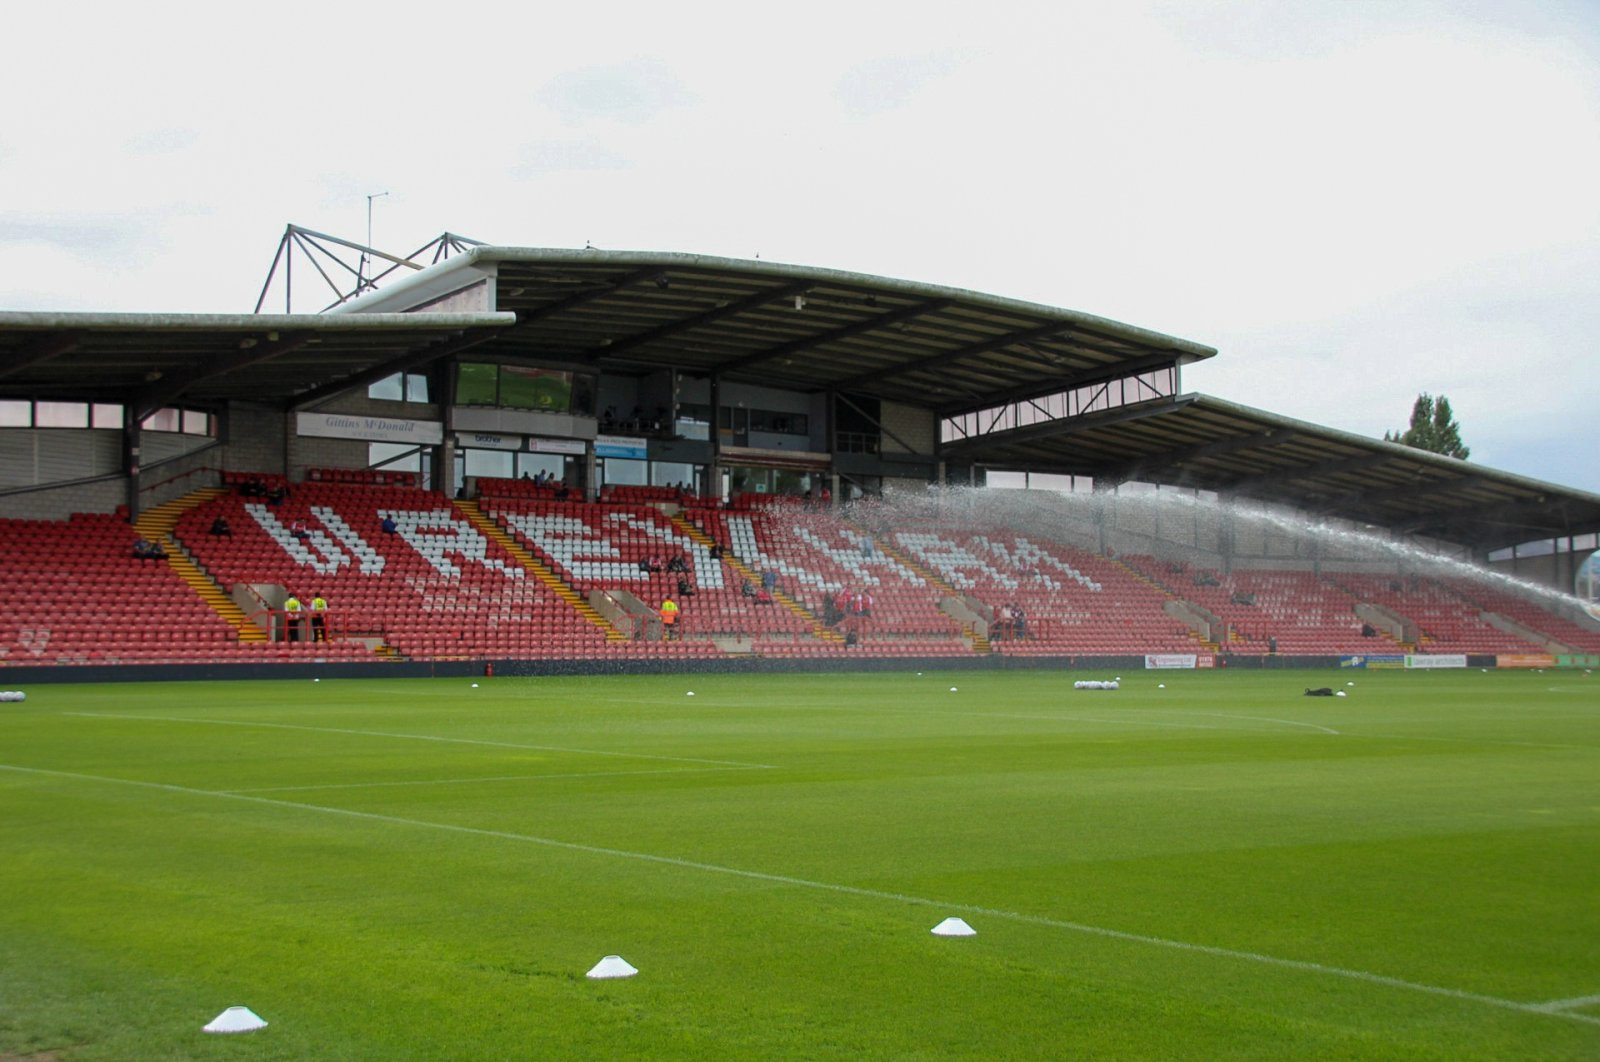 A view of Wrexham's Racecourse Ground, in Wrexham, Wales, Sept. 11, 2021. (AP PHOTO)